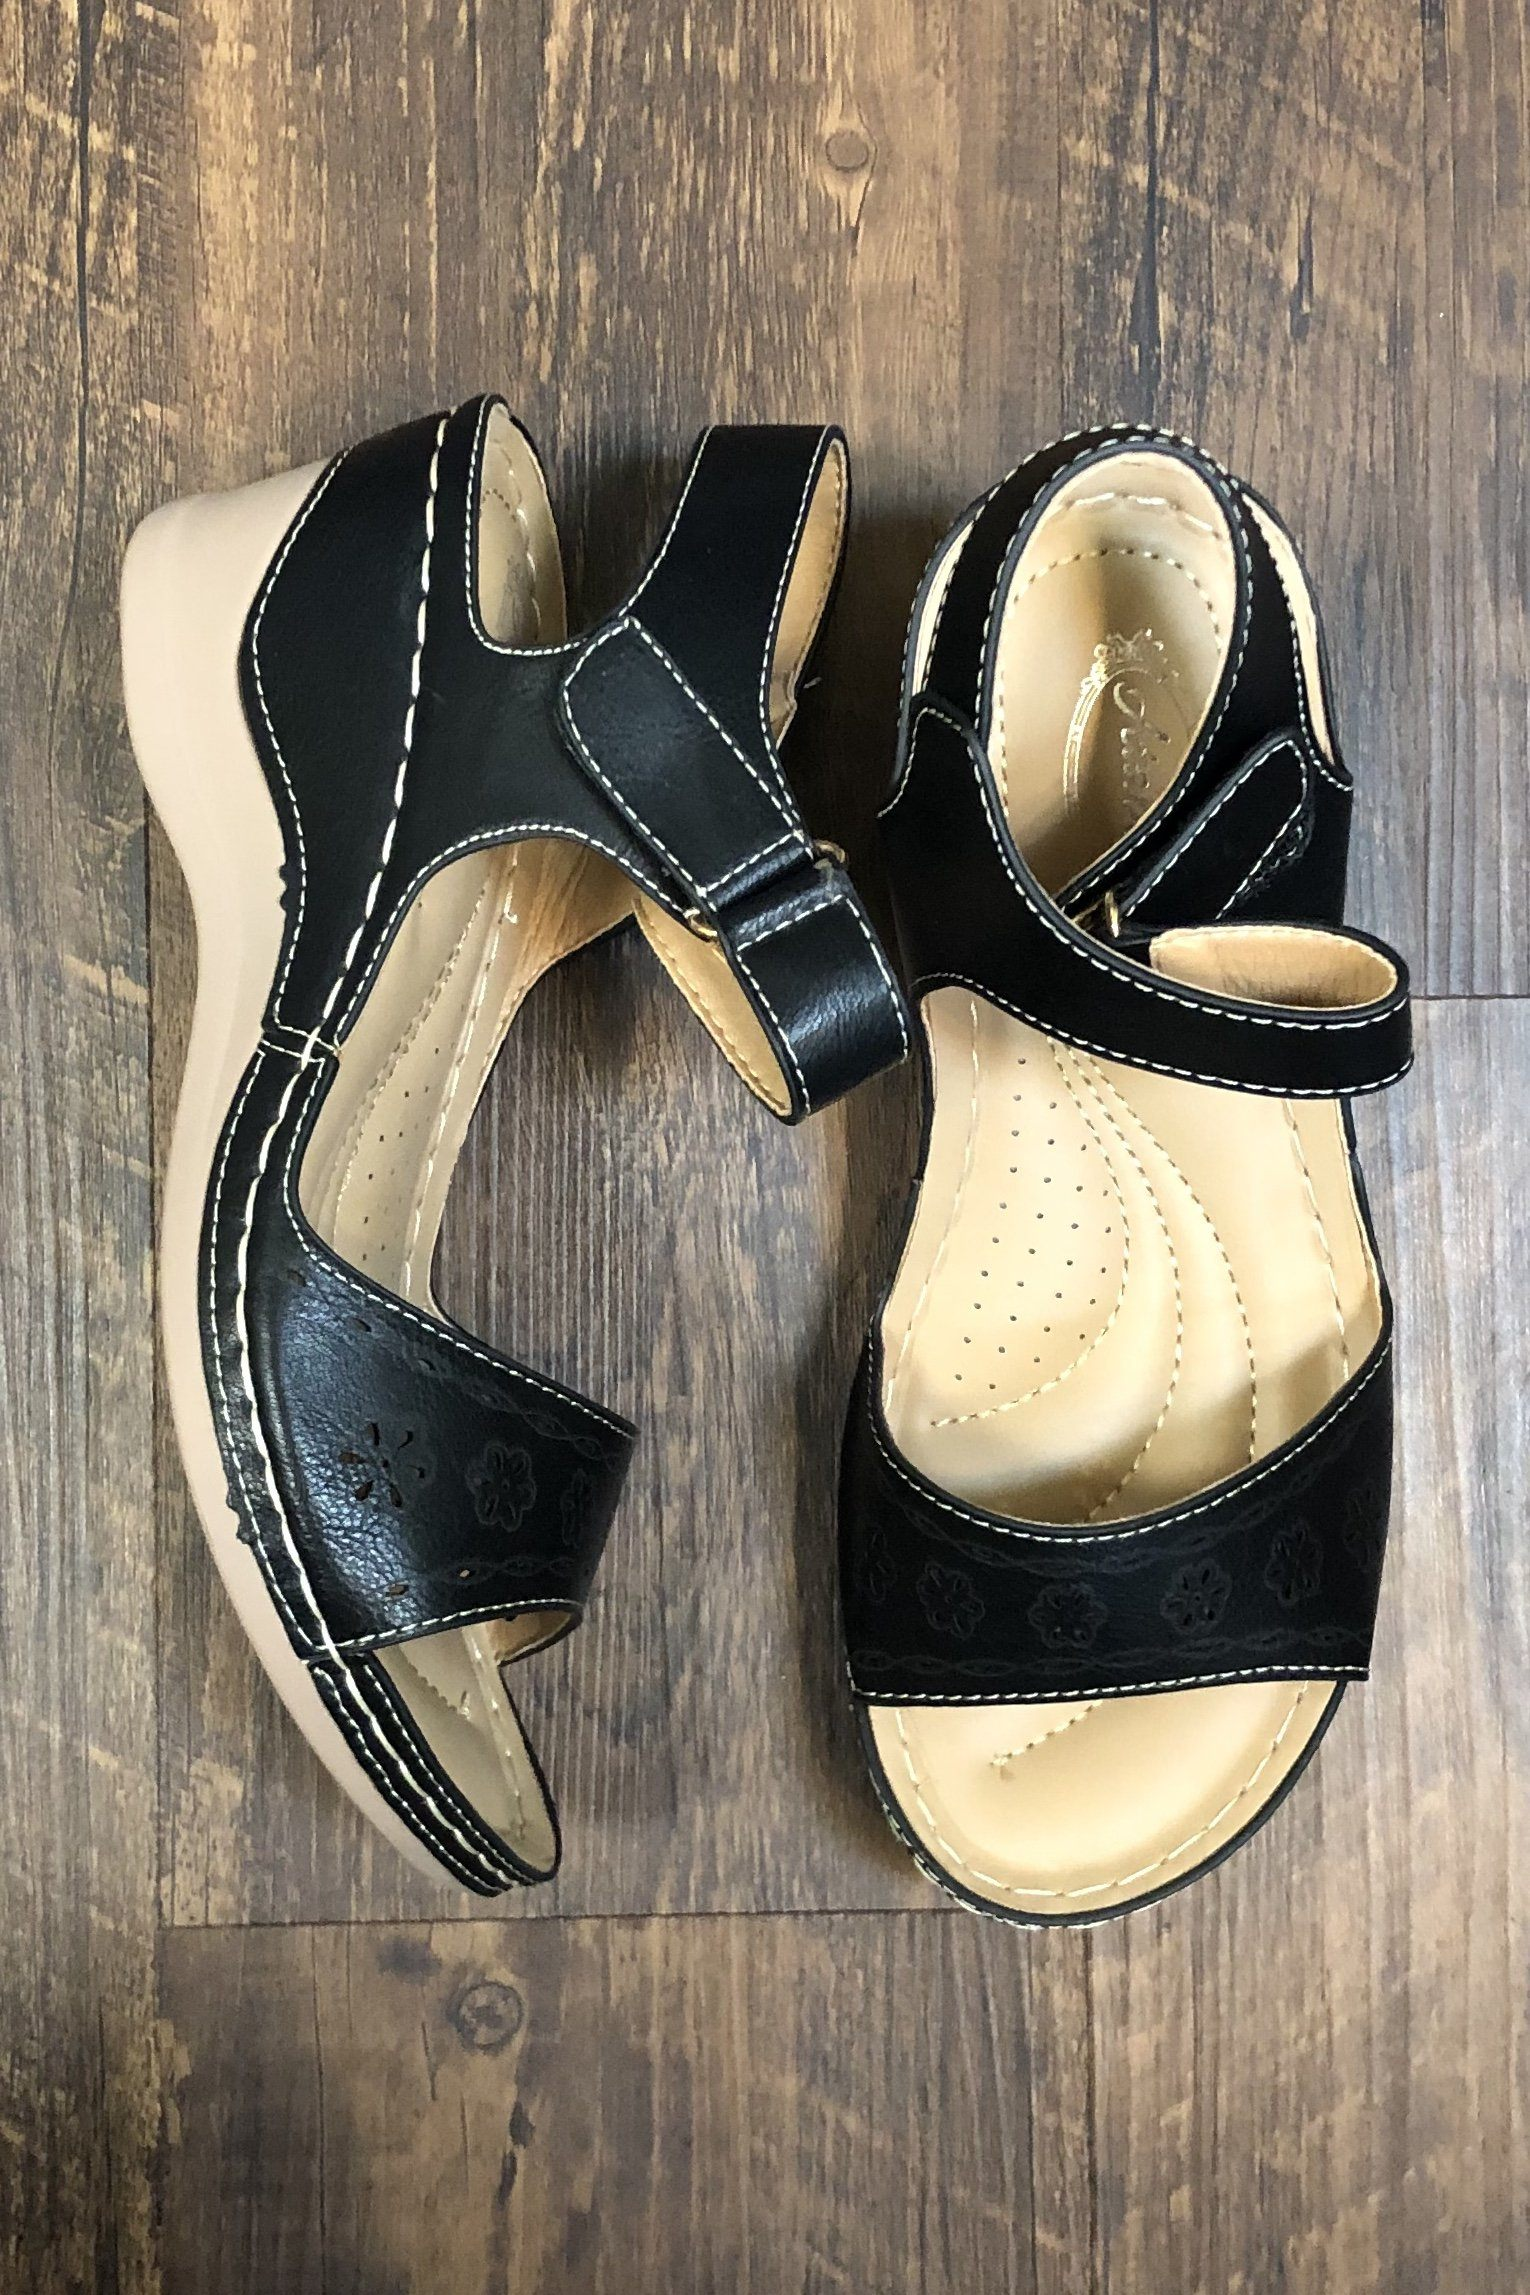 Black Wedge SHOES K.Lane's Boutique